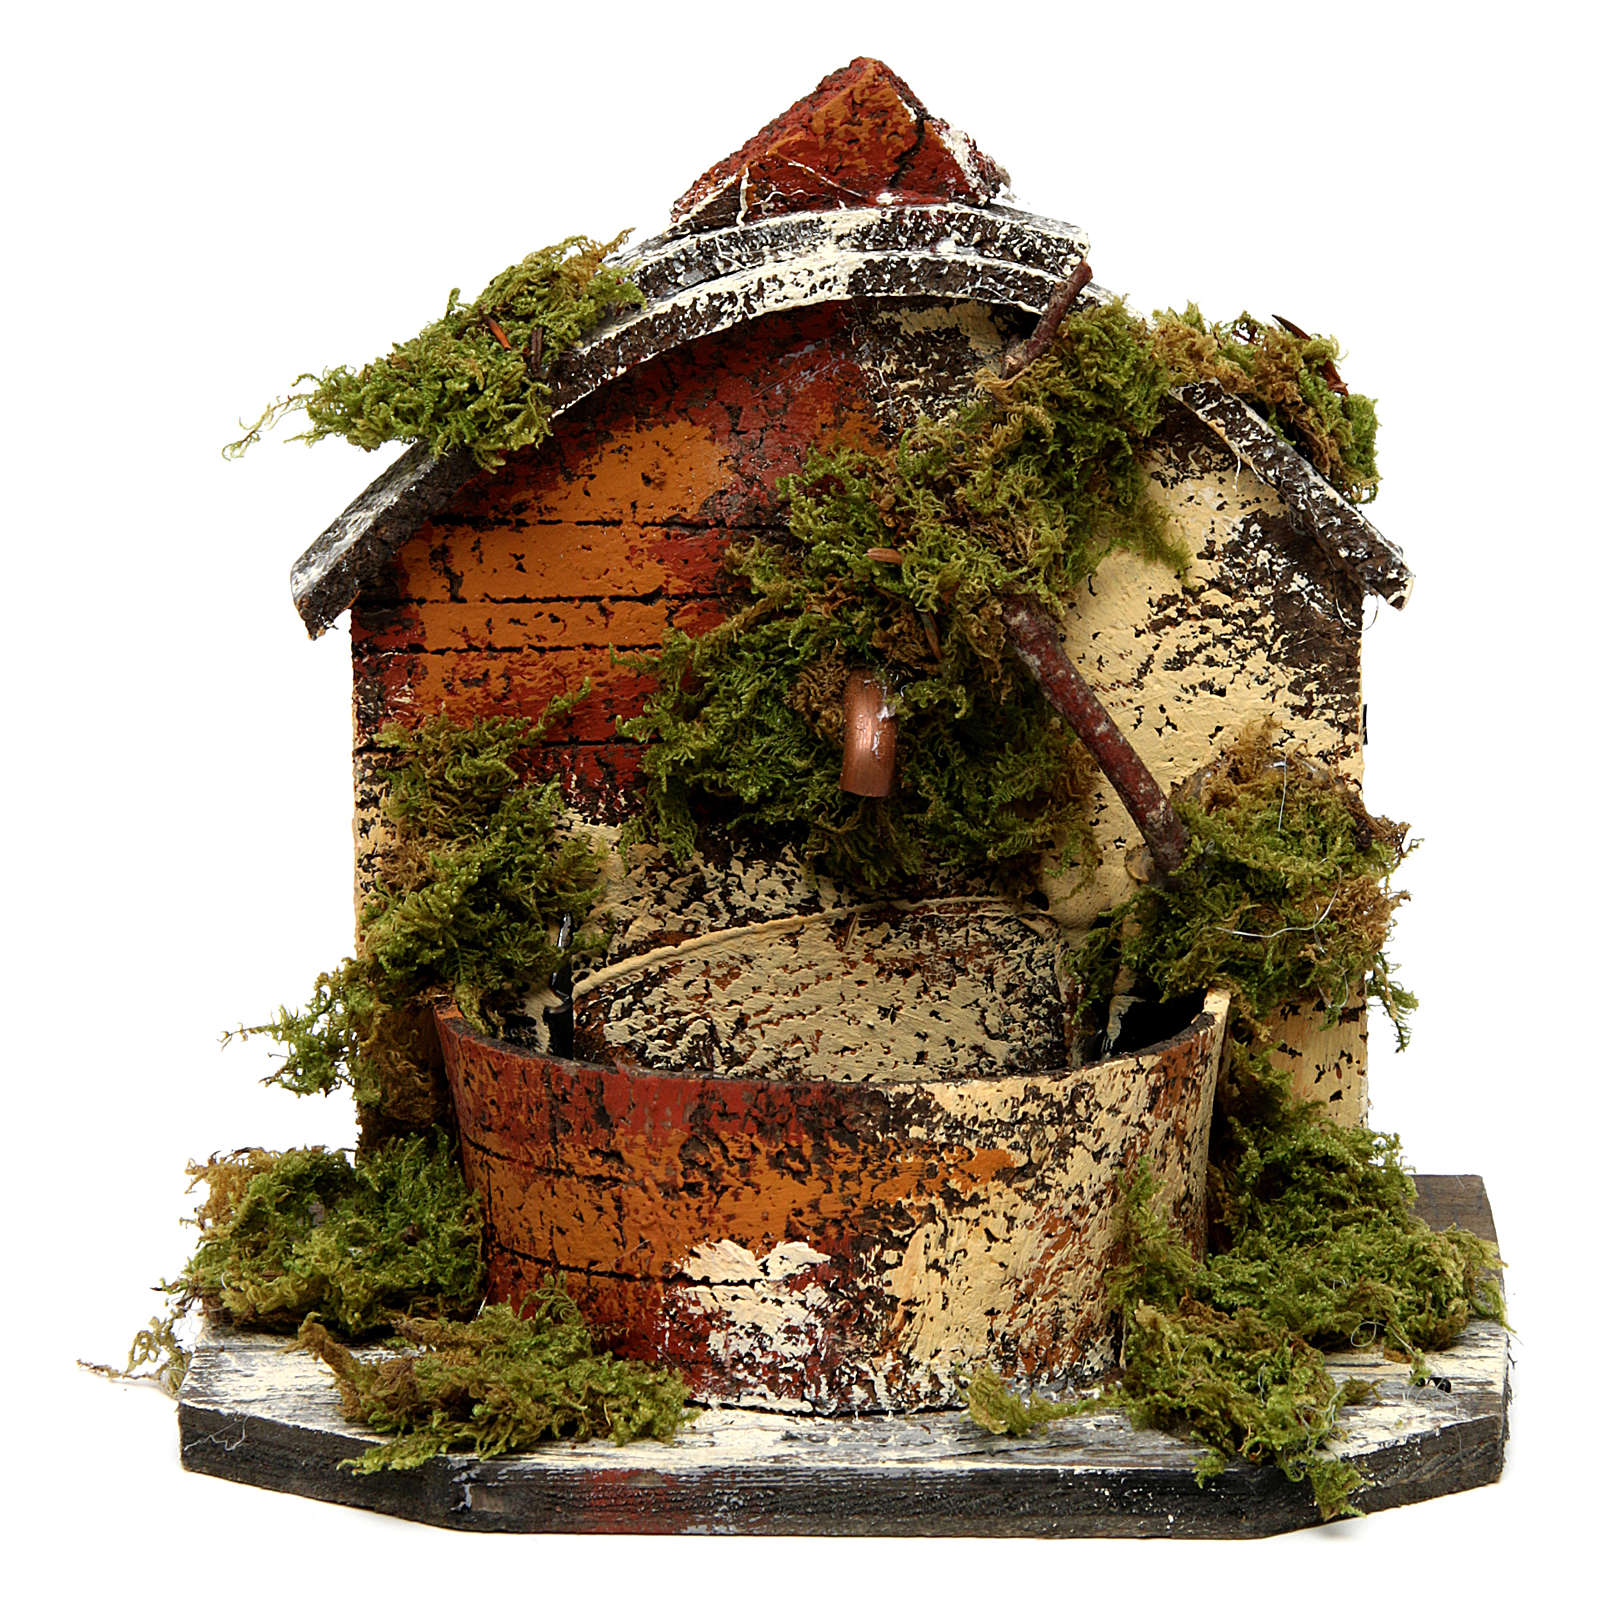 Brick Fountain with Moss and Pump 15x10x10 cm 4